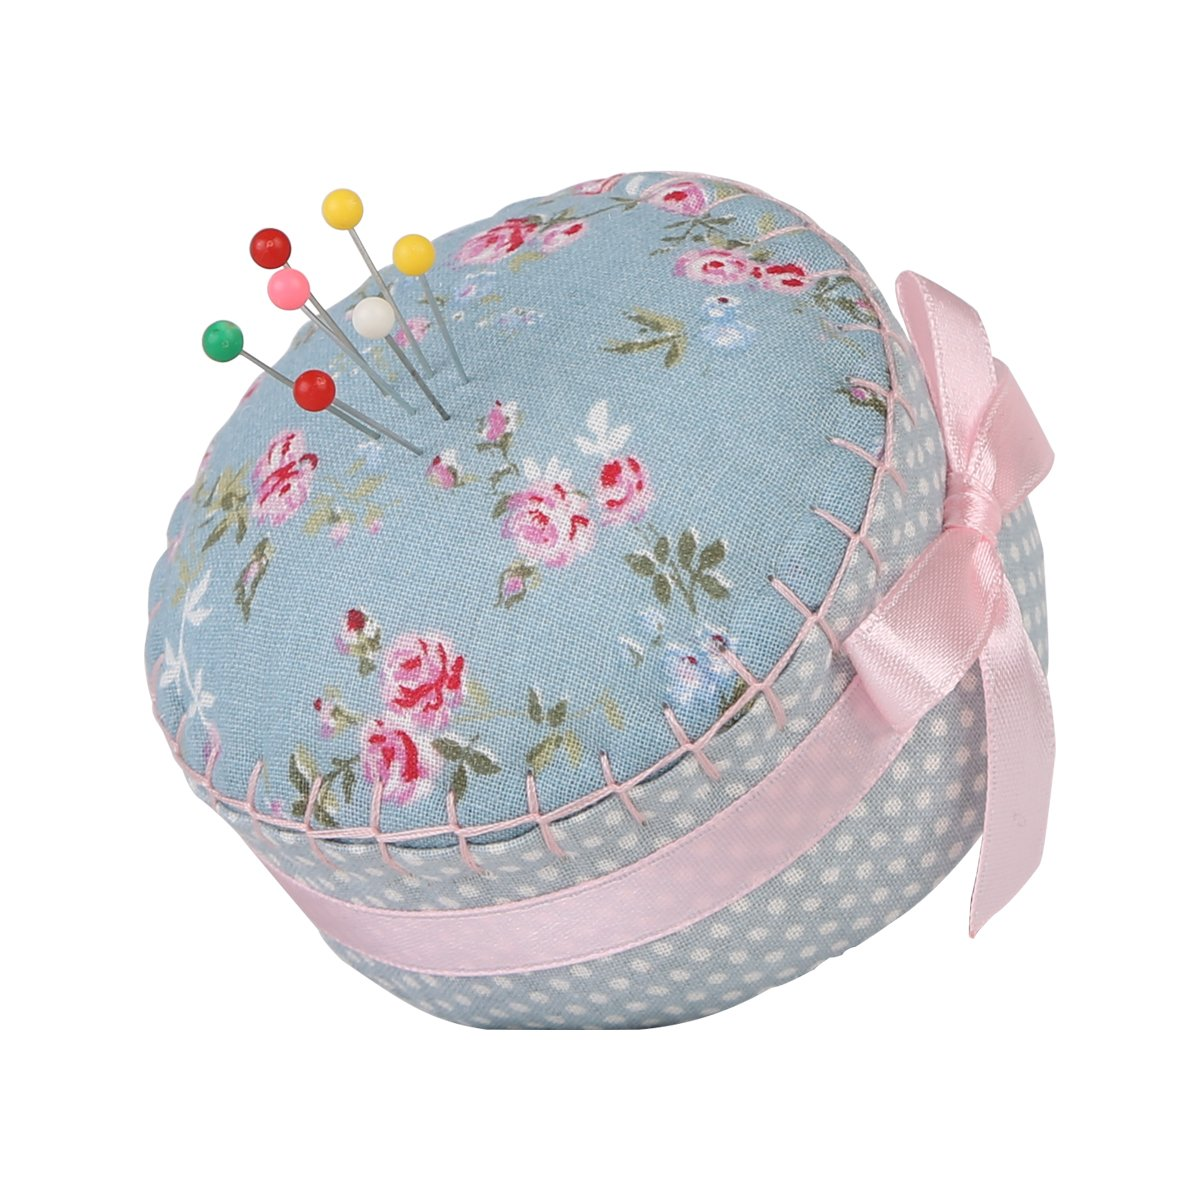 Neoviva Floral Fabric Coated Fully Padded Pin Cushion in Cupcake Shape with Satin Ribbon Knot for Long Needle Storage, Floral Blue Ocean, Pack of 2